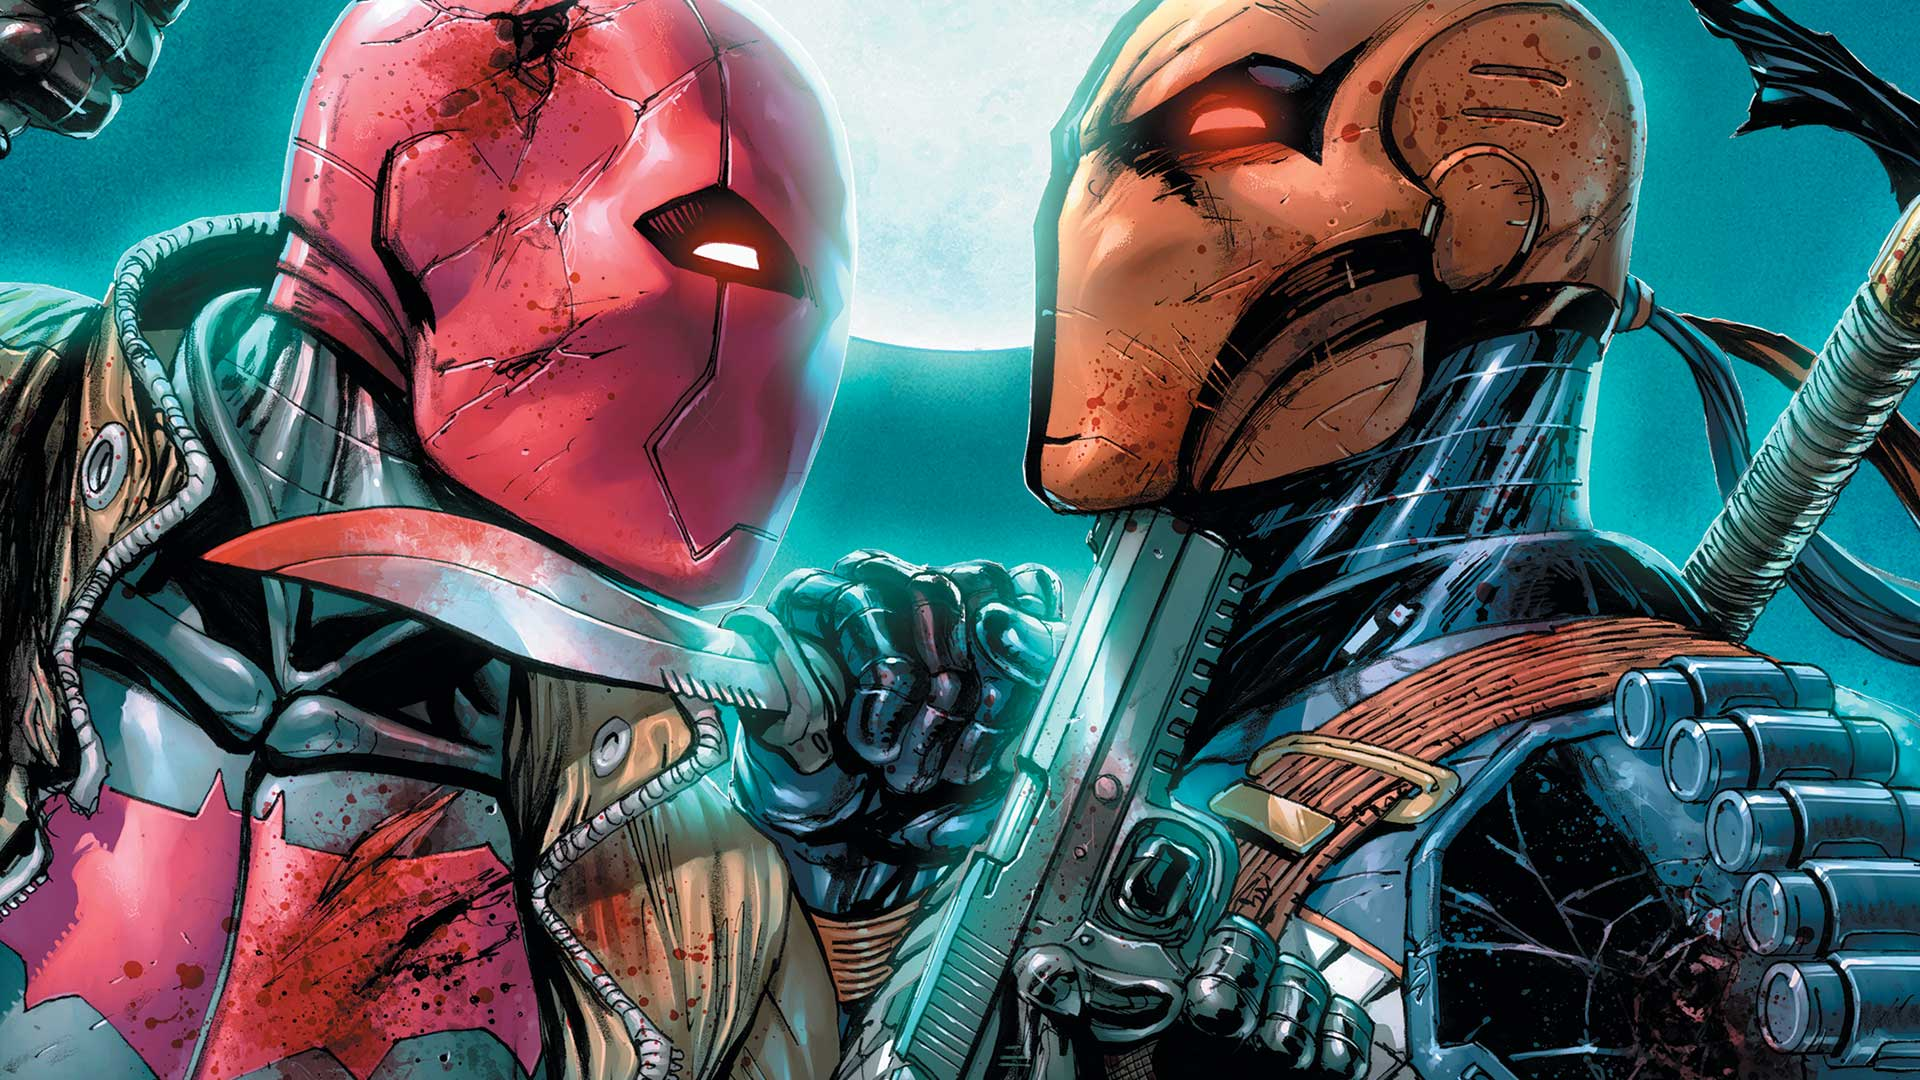 Red Hood Vs Deathstroke Full HD Wallpaper And Background Image